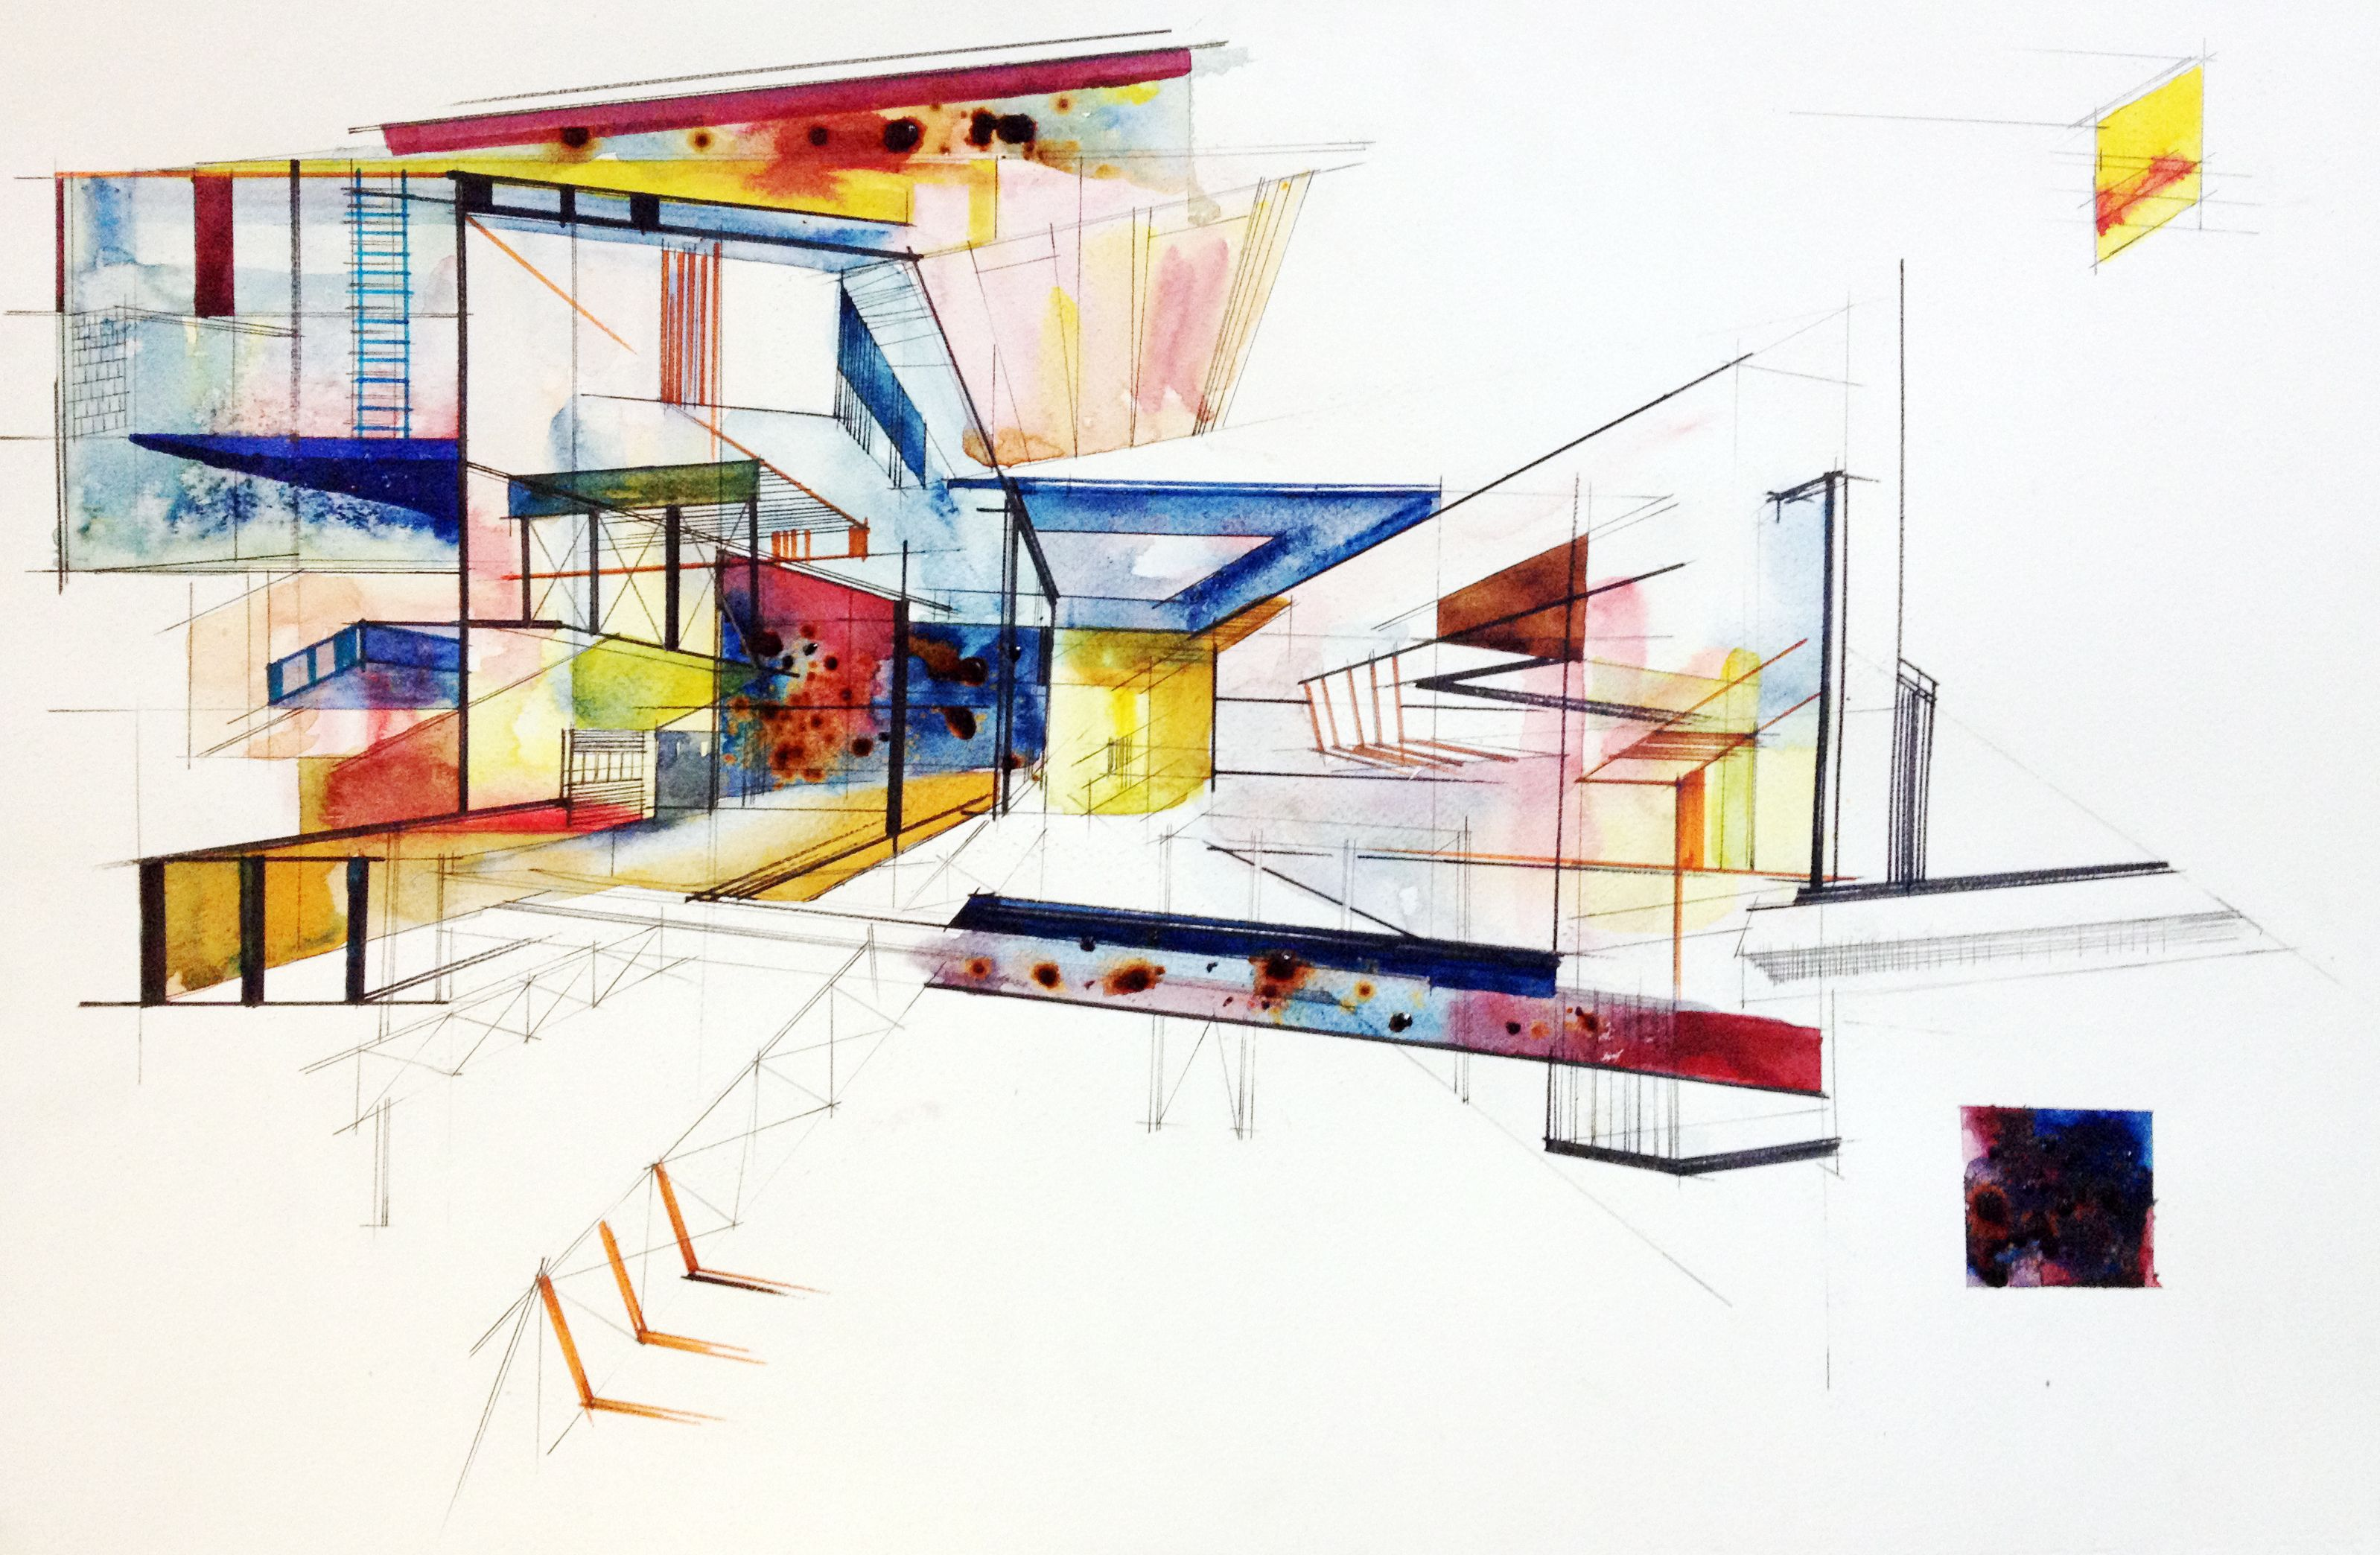 Abstract Colorful Architectural Watercolor Watercolor Paintings